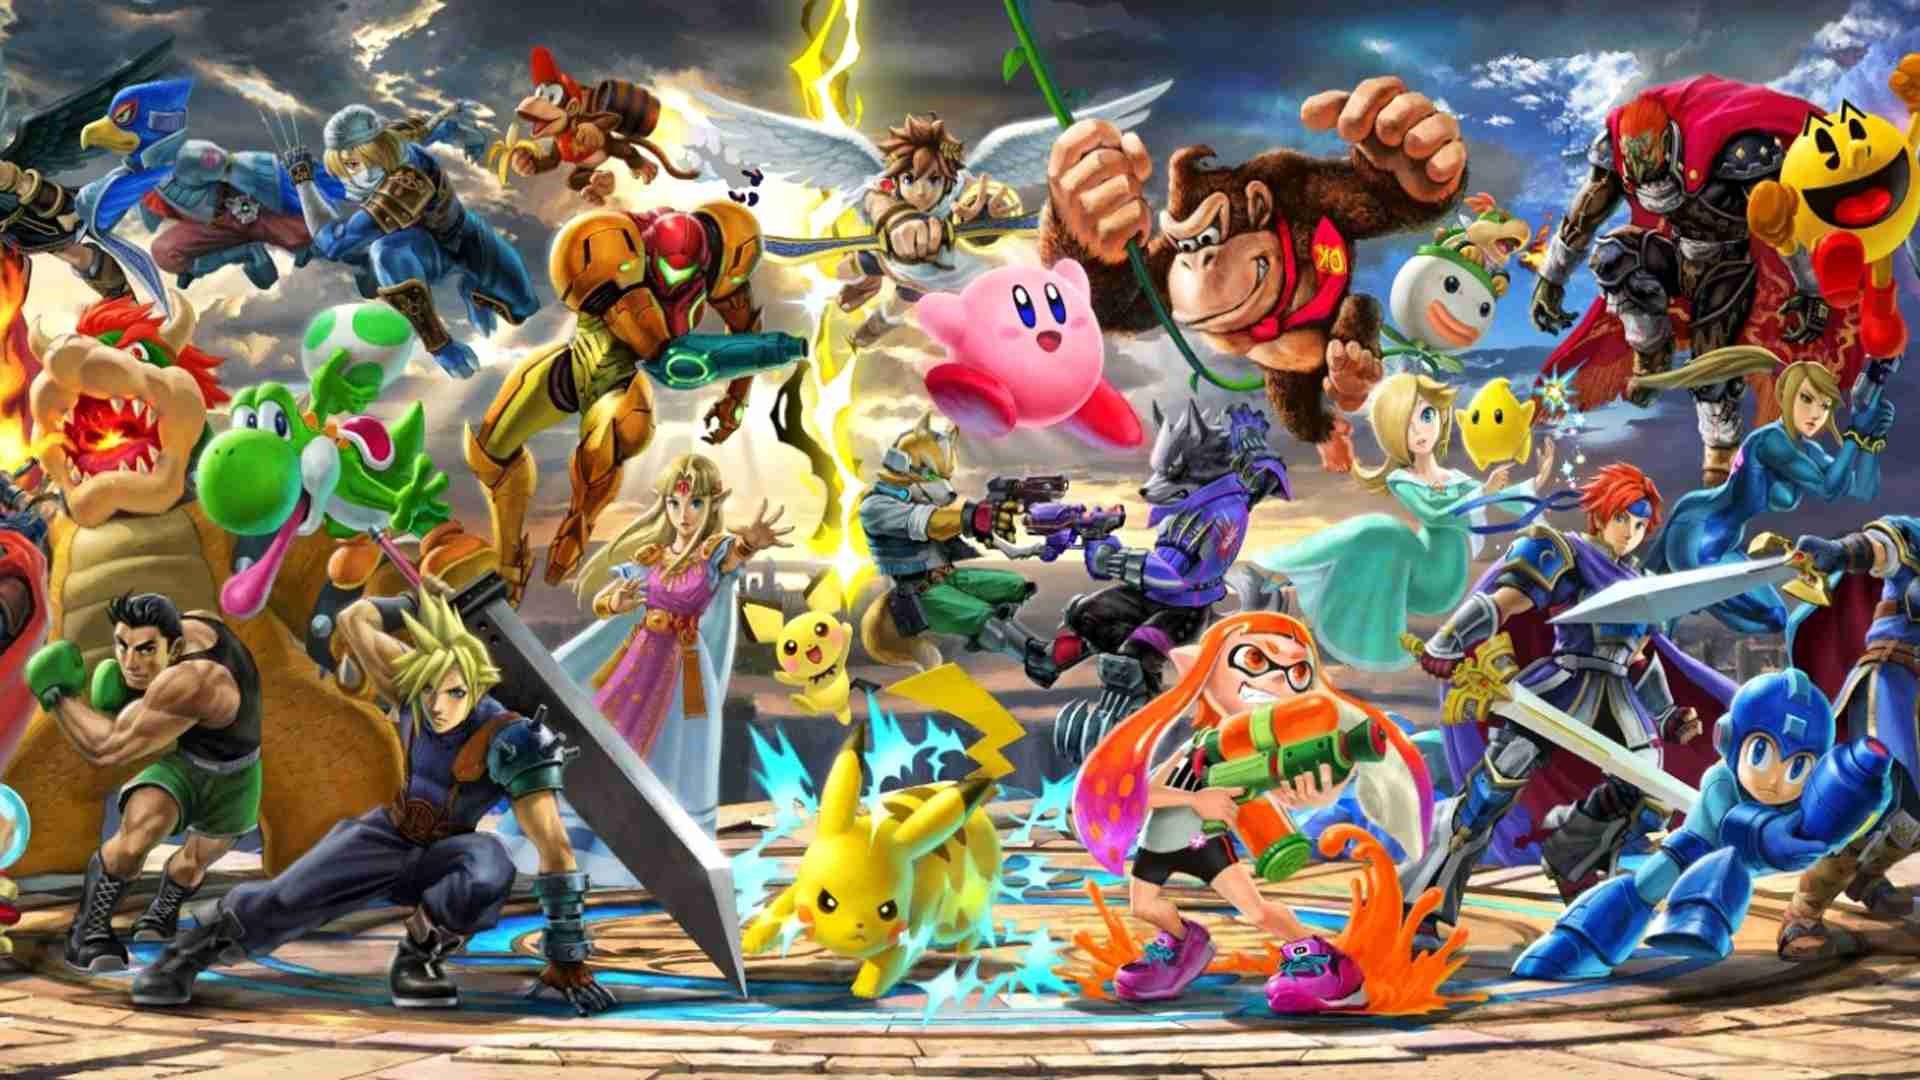 Super Mario Smash Bros Ultimate offline multiplayer fighting game on the Nintendo Switch.